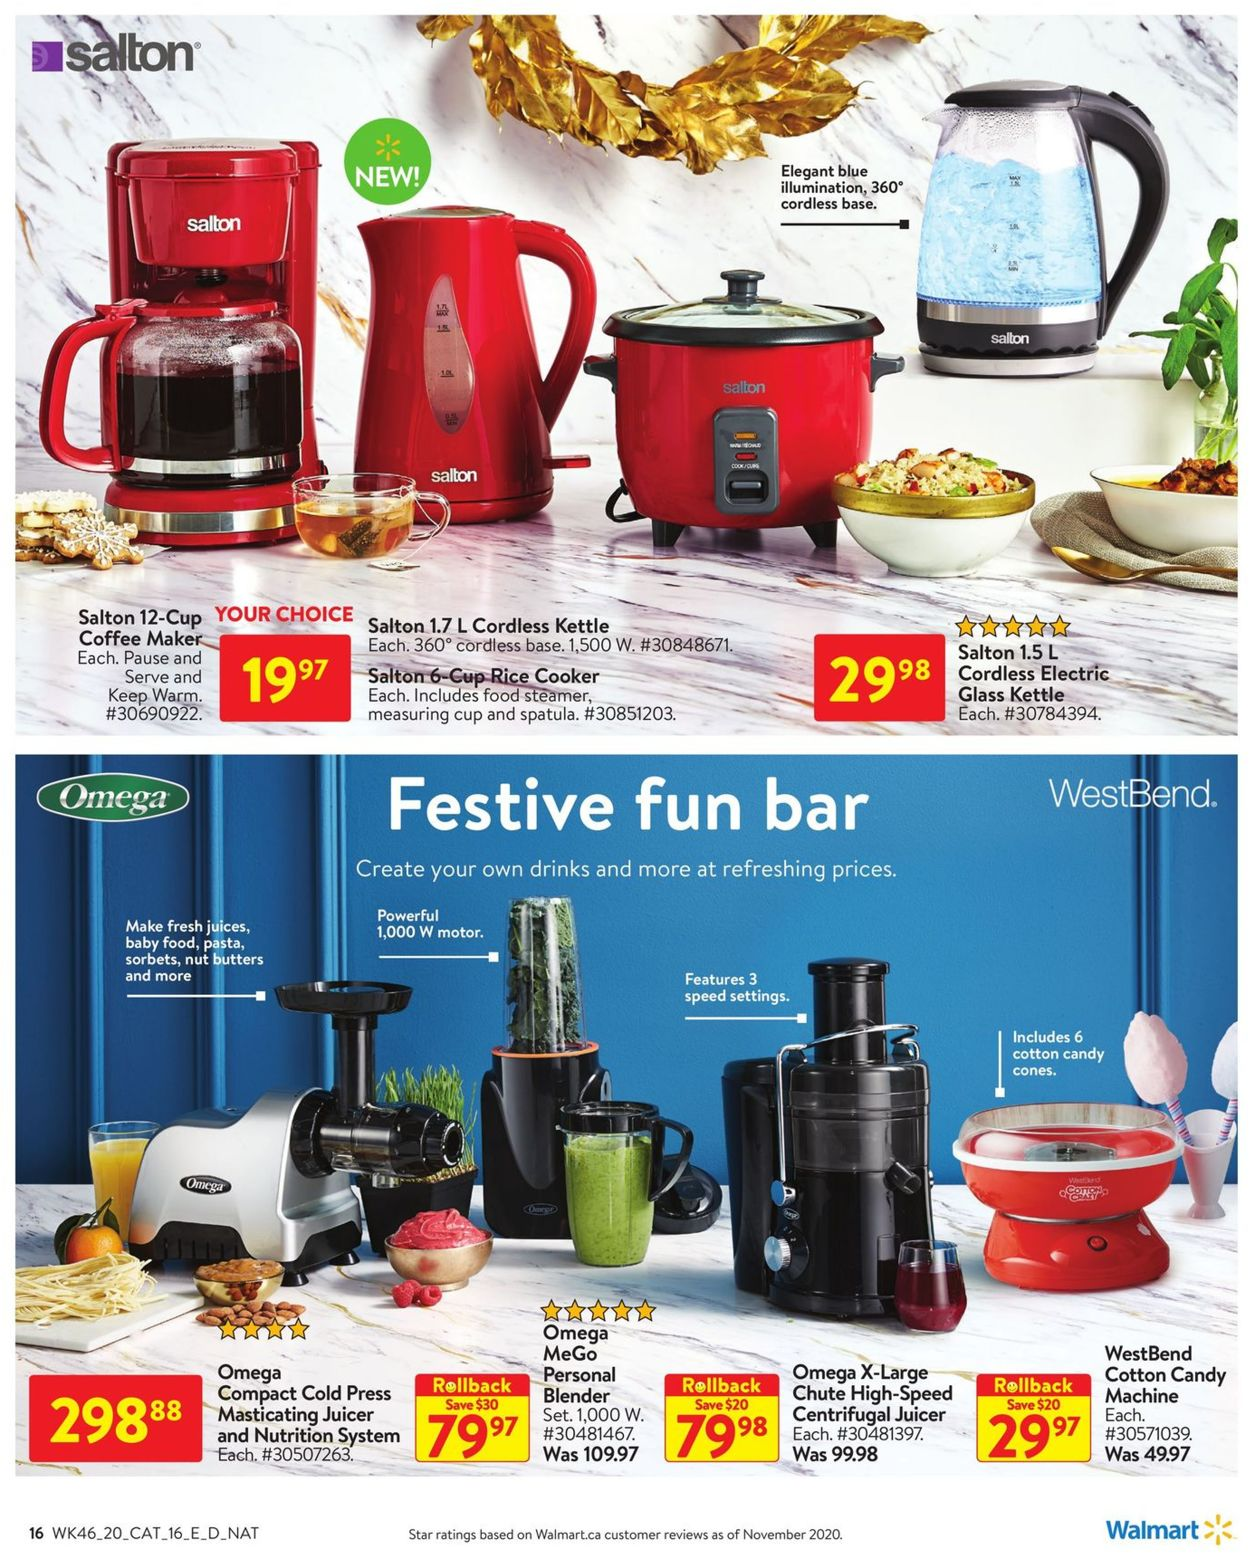 Walmart - Holiday 2020 Flyer - 12/10-12/30/2020 (Page 16)